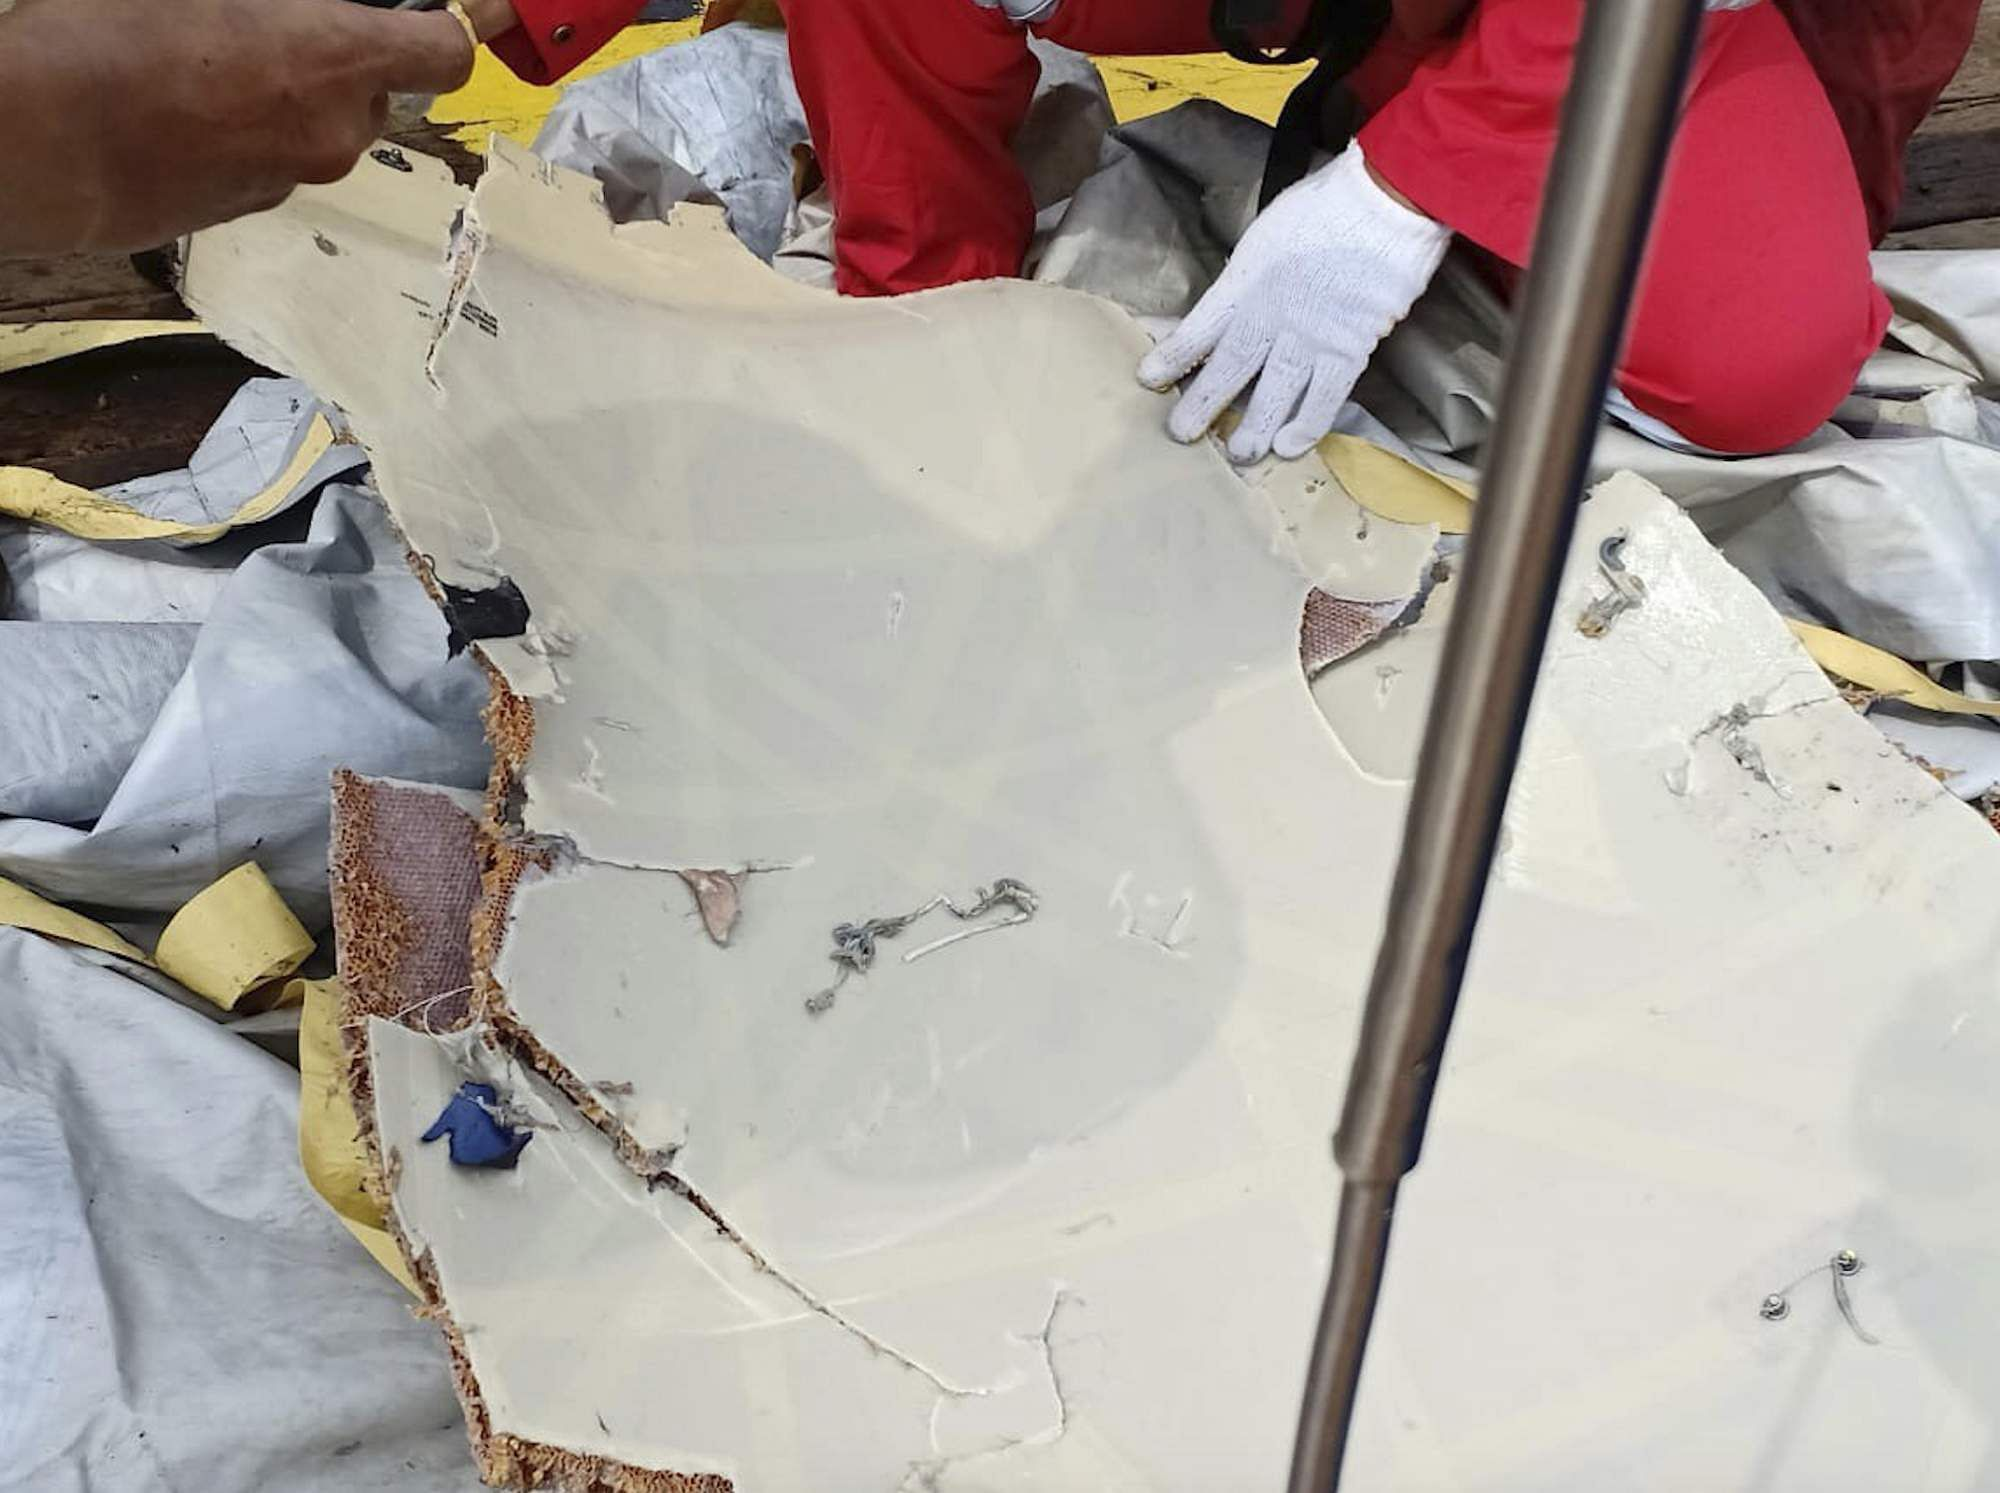 Indonesia Lion Air Plane Crash Updates Pope Offers Condolences To Crashed Aircraft Beacon In This Photo Released By Indonesian Disaster Mitigation Agency Bnpb A Rescuer Inspects Debris Believed Be From Passenger Jet That Off